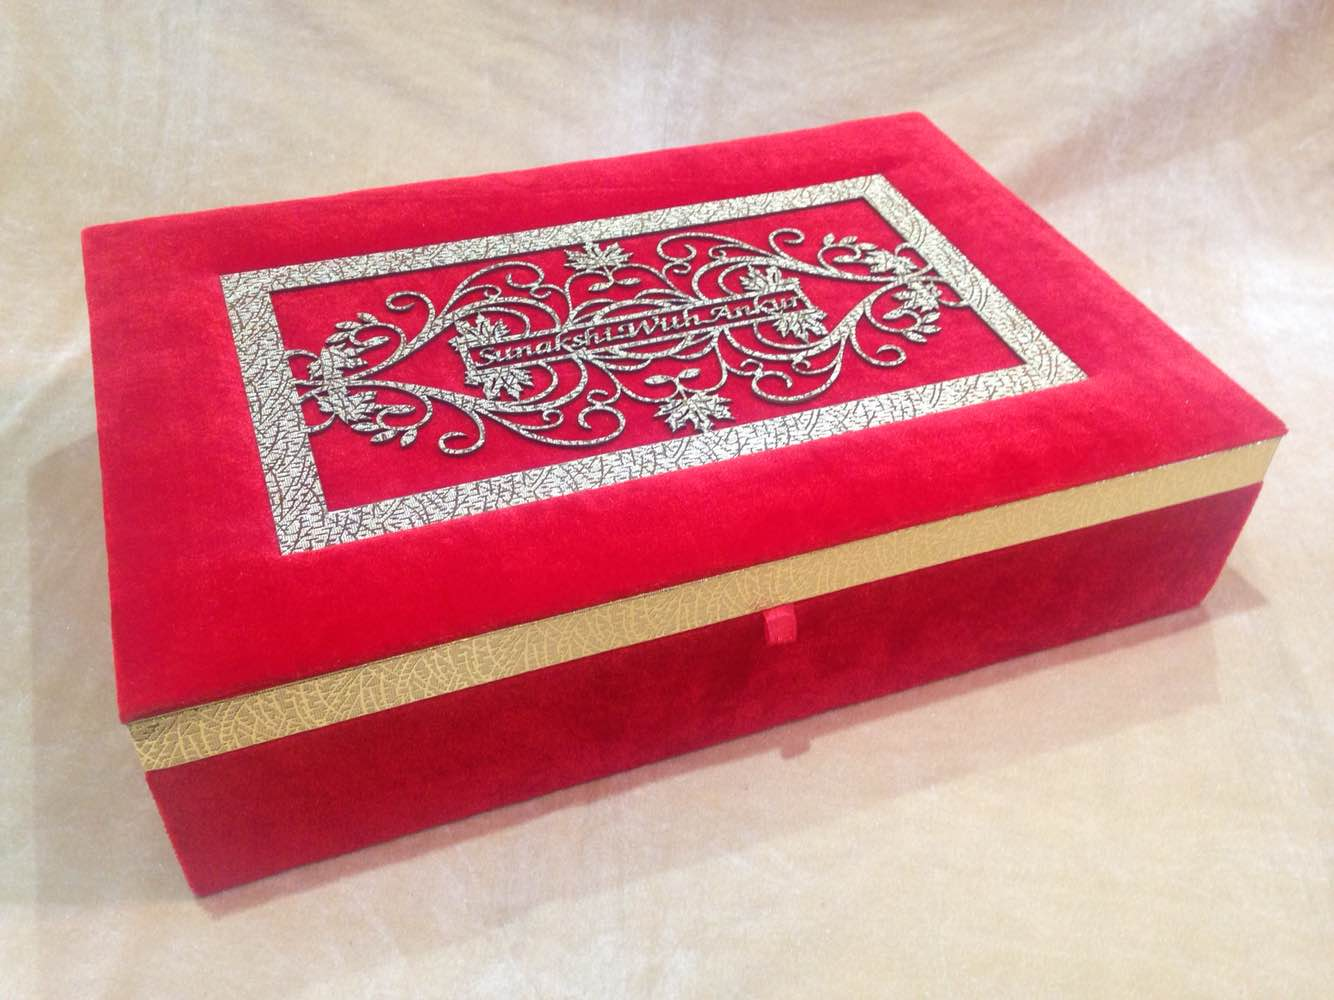 Traditional Saree Packing Box Manufacturer   We are leading manufacturer, supplier and wholesaler of Traditional Saree Packing Box In Delhi